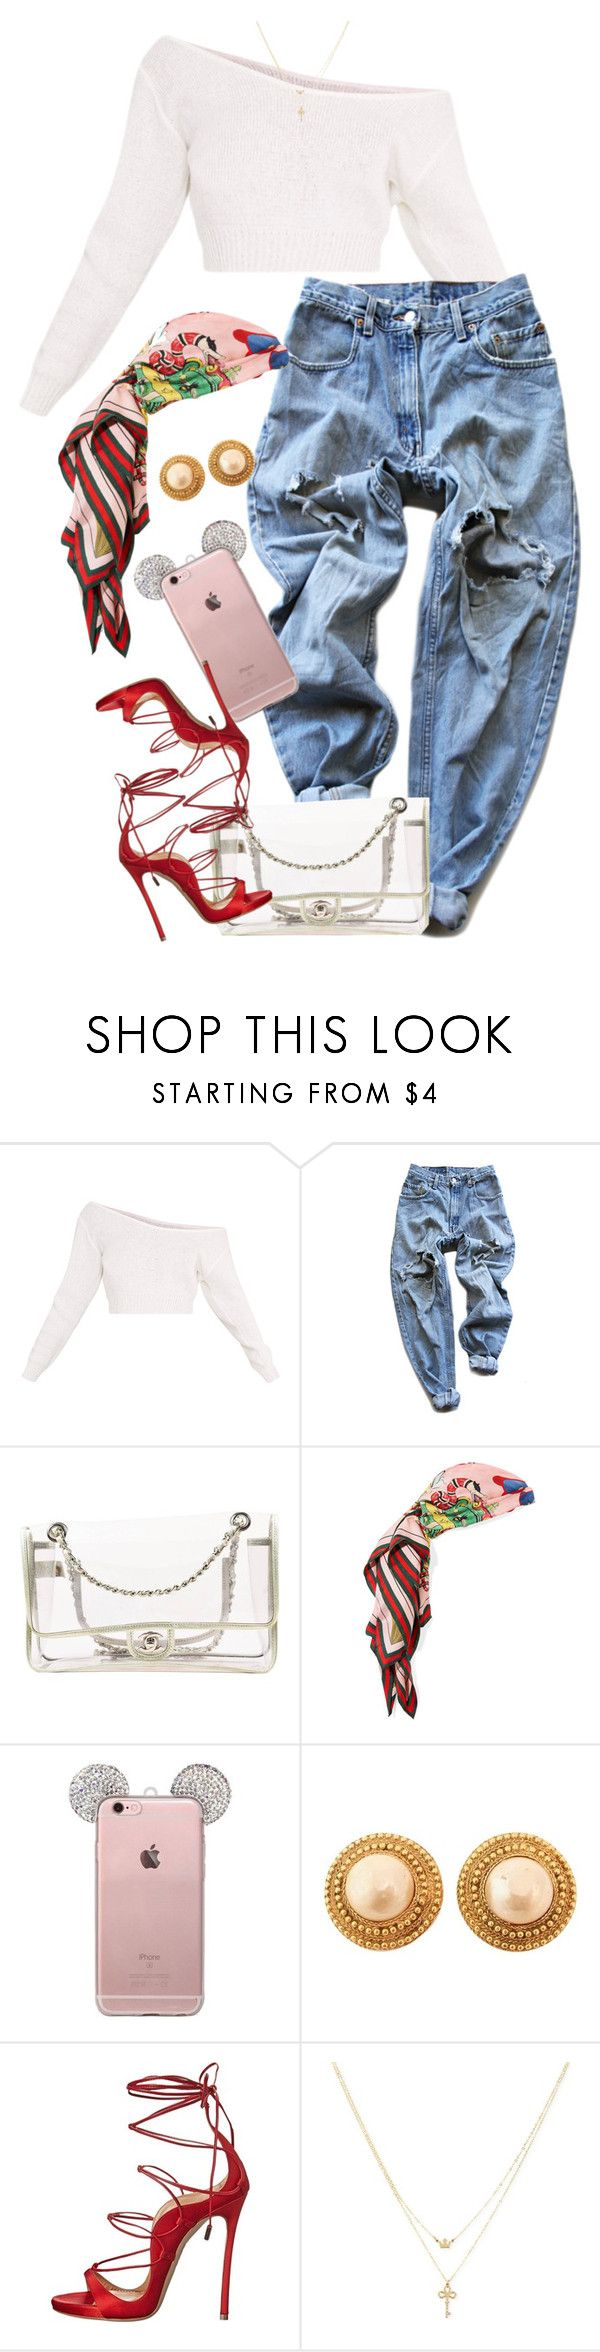 """""""Untitled #1625"""" by power-beauty ❤ liked on Polyvore featuring Levi's, Chanel, Gucci, Dsquared2 and Betsey Johnson"""